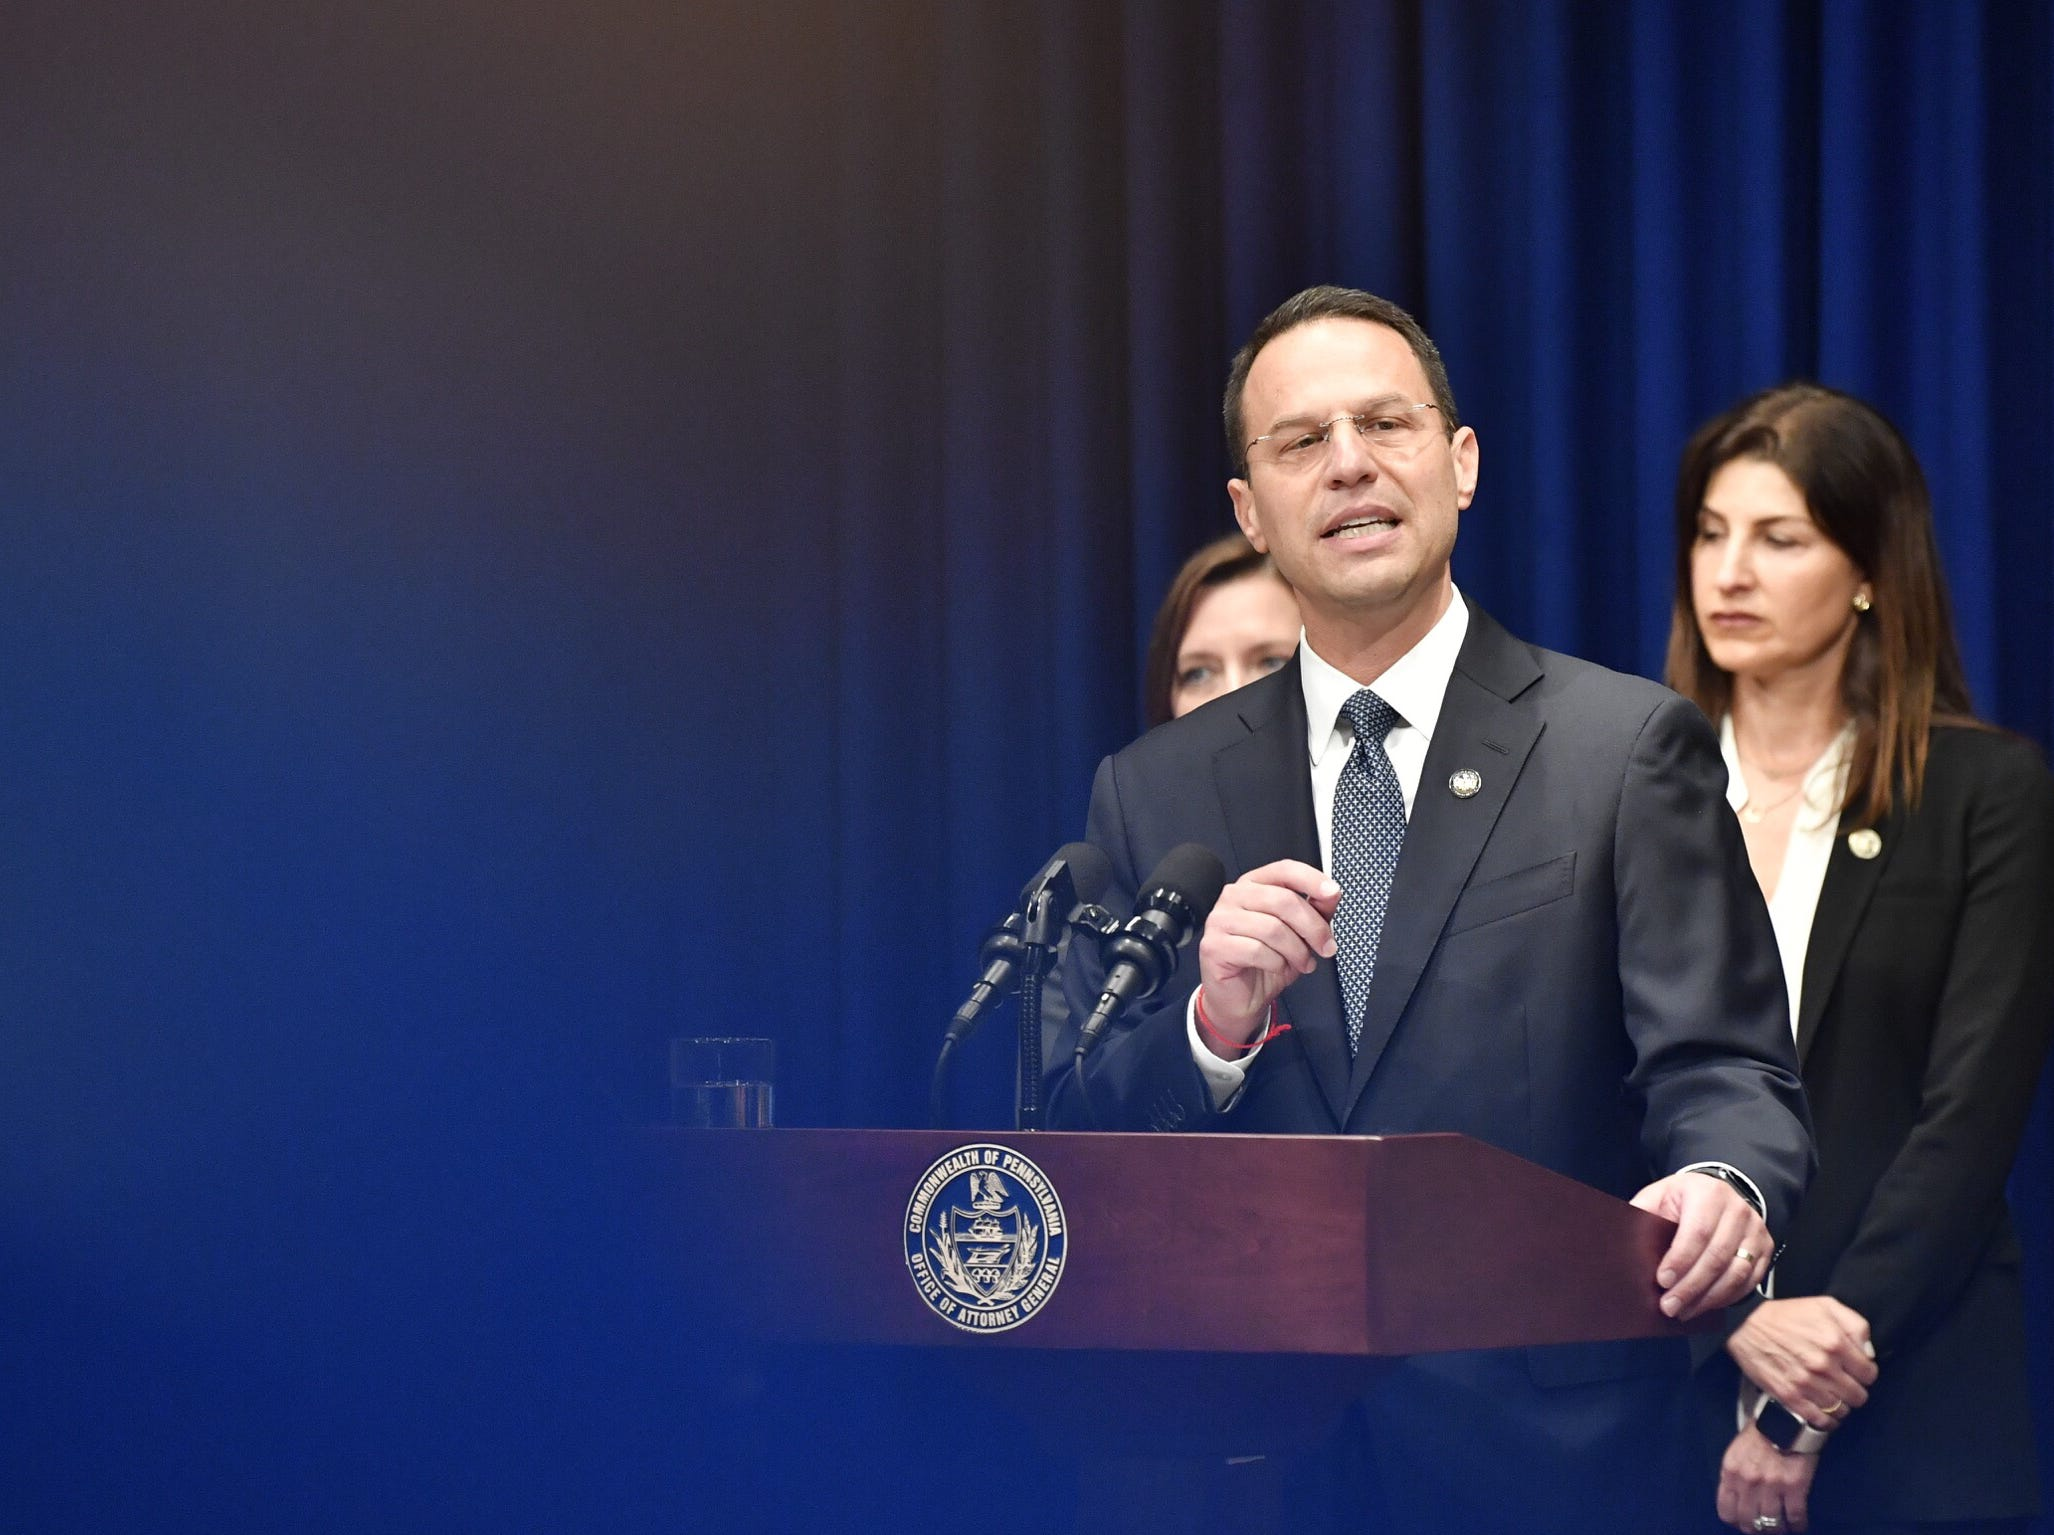 Josh Shapiro, attorney general of Pennsylvania, discusses a grand jury report on sexual abuse by clergy of the Catholic church.